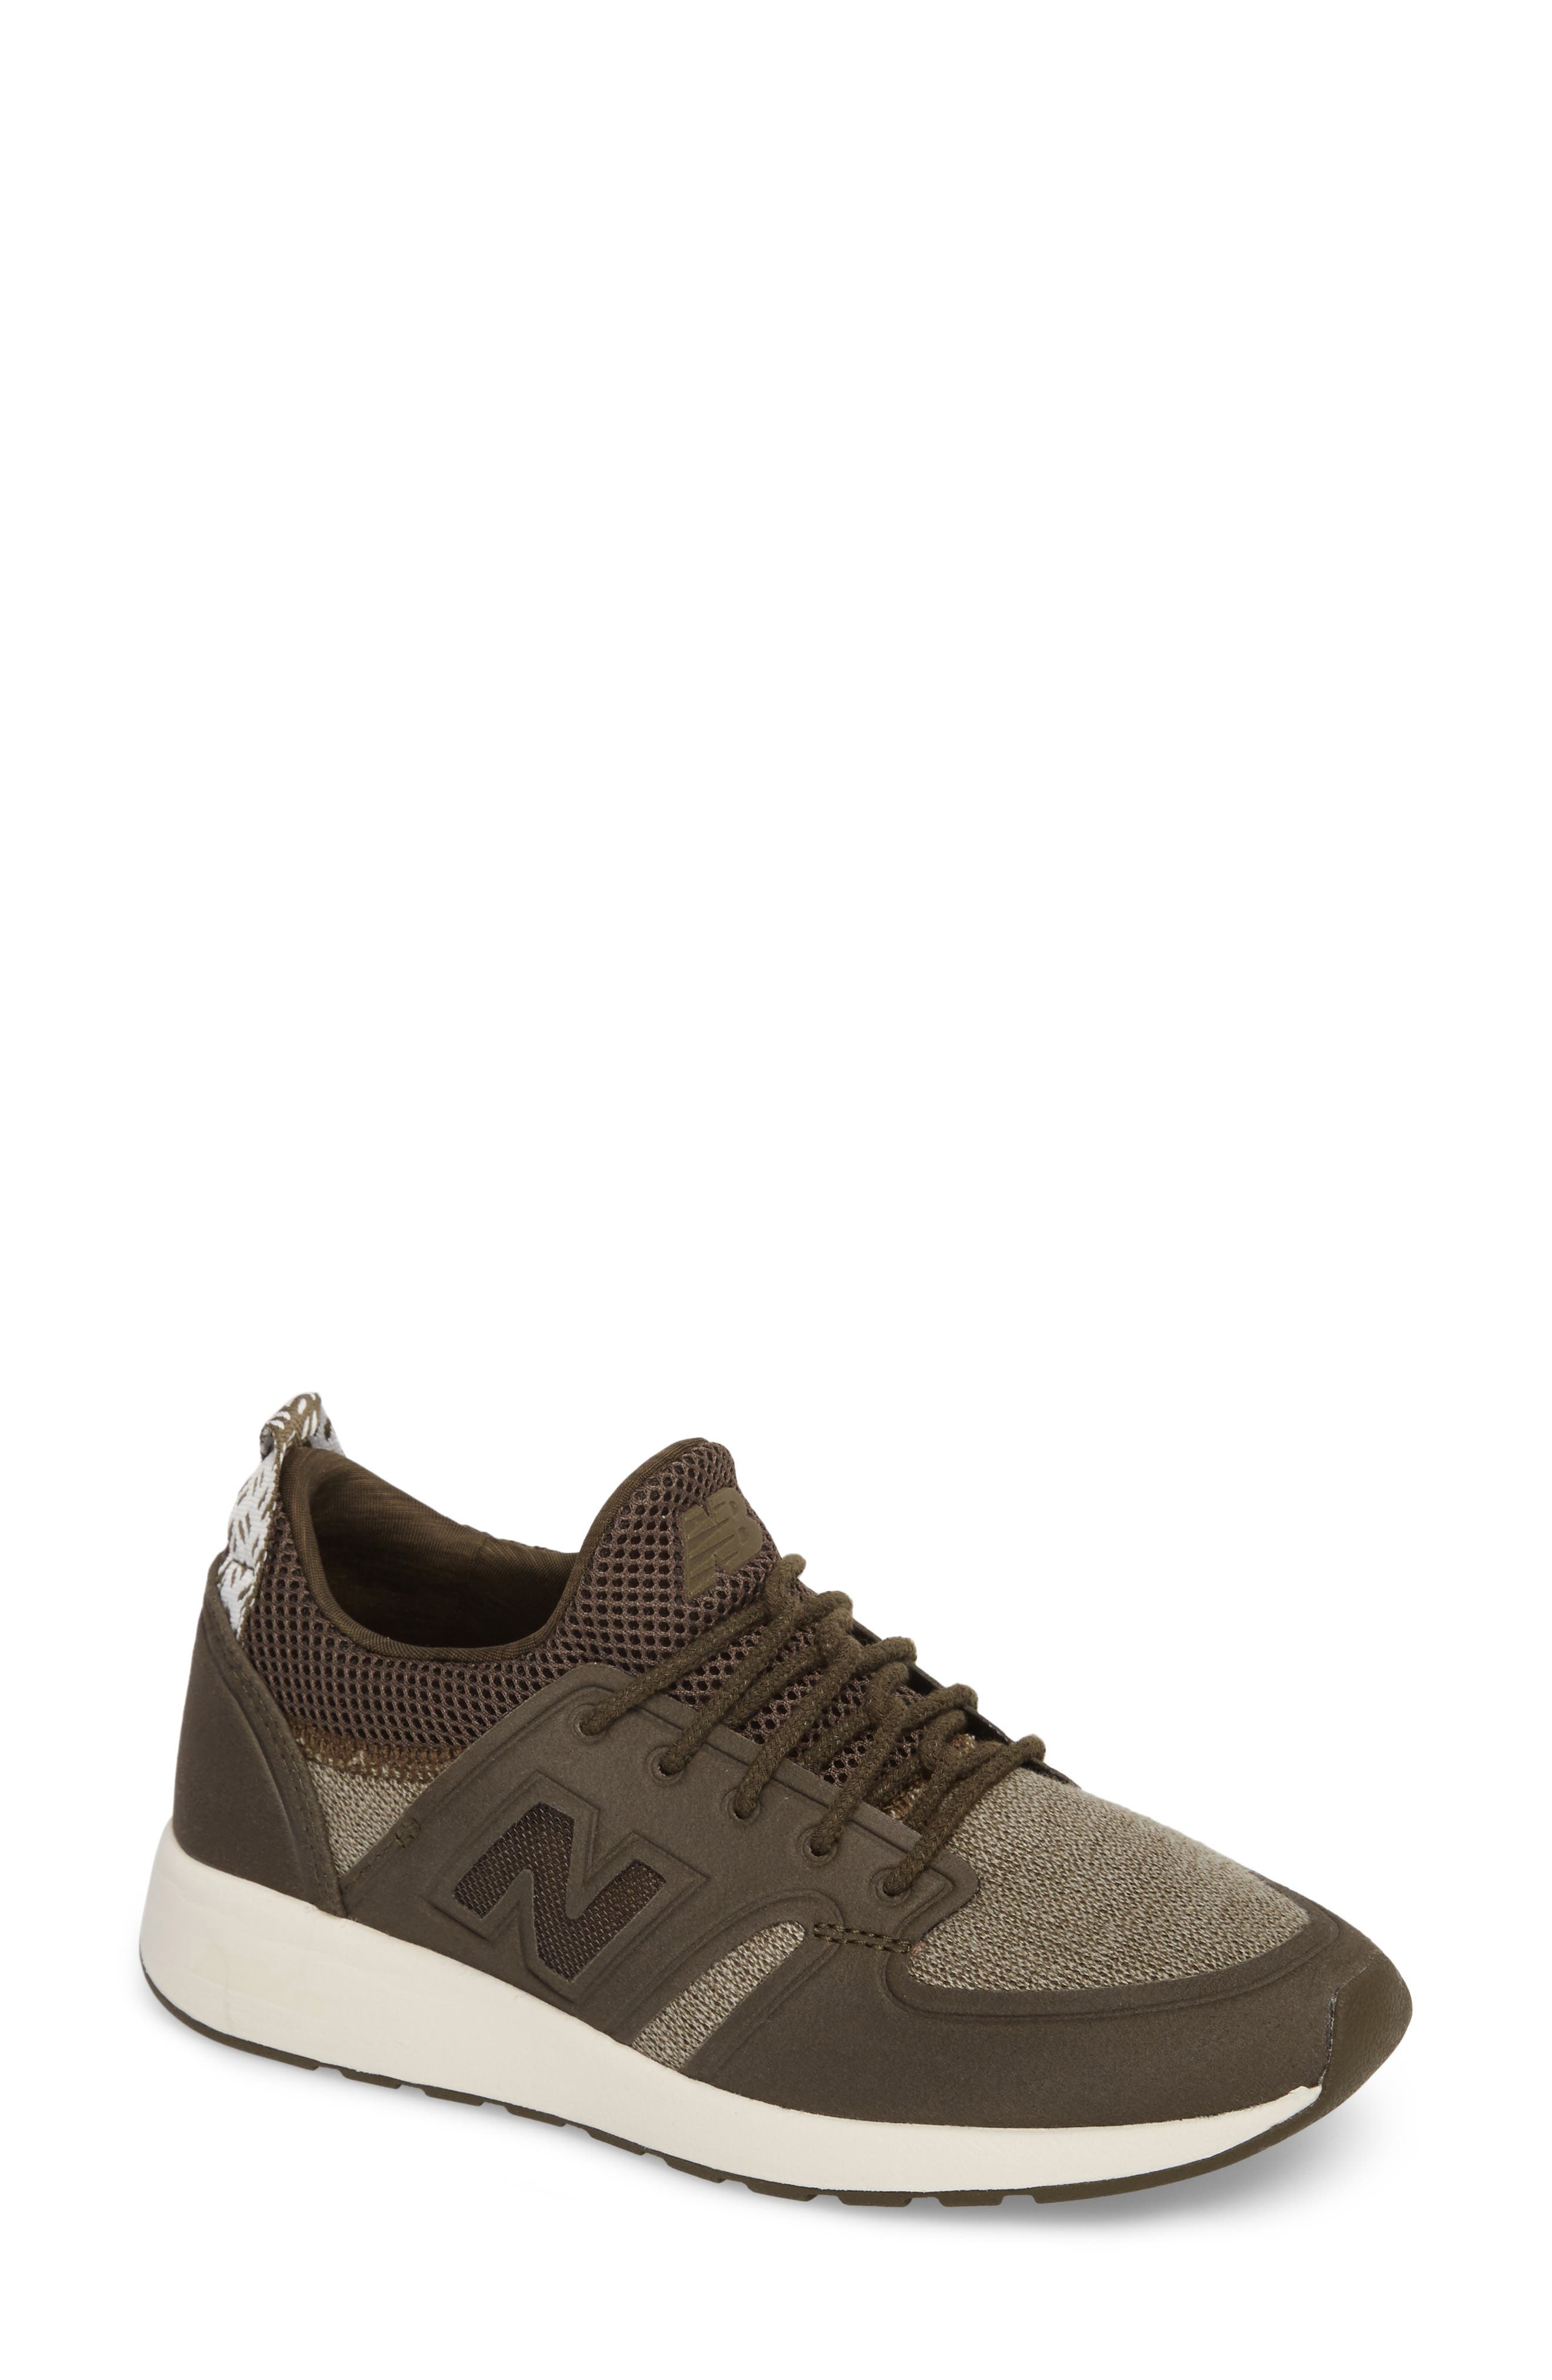 Alternate Image 1 Selected - New Balance 420 Slip-On Sneaker (Women)